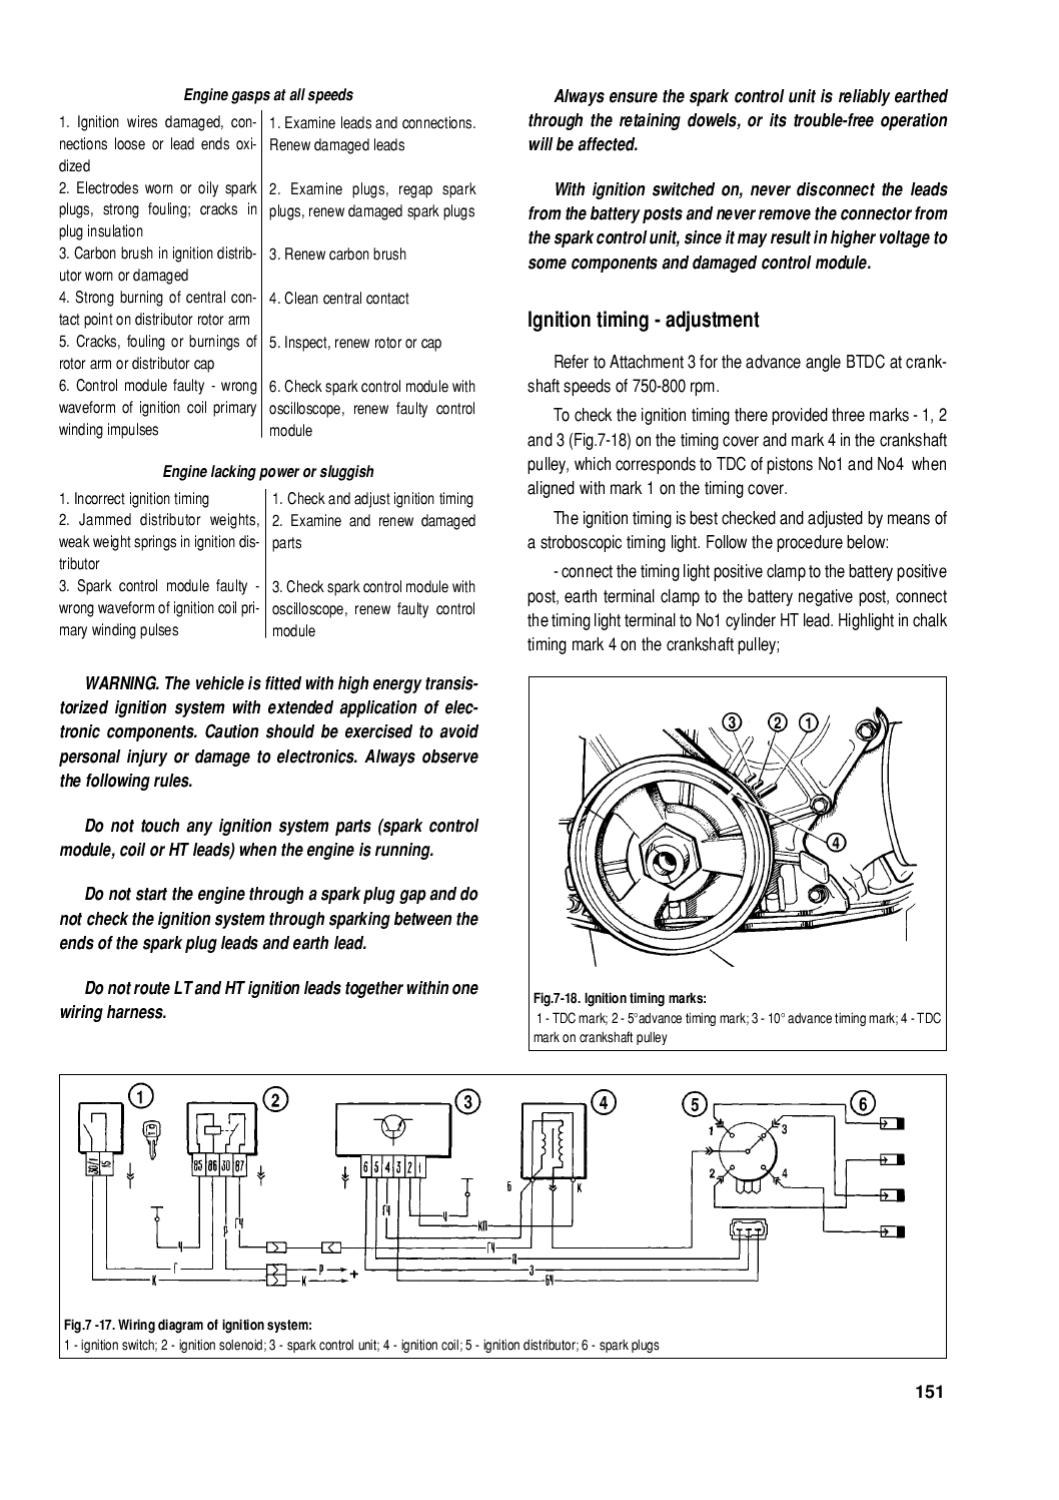 LADA 4x4 NIVA 1700 REPAIR MANUAL - Part 3 by Gianni ... Ignition Switch Wiring Diagram Plug Gap on